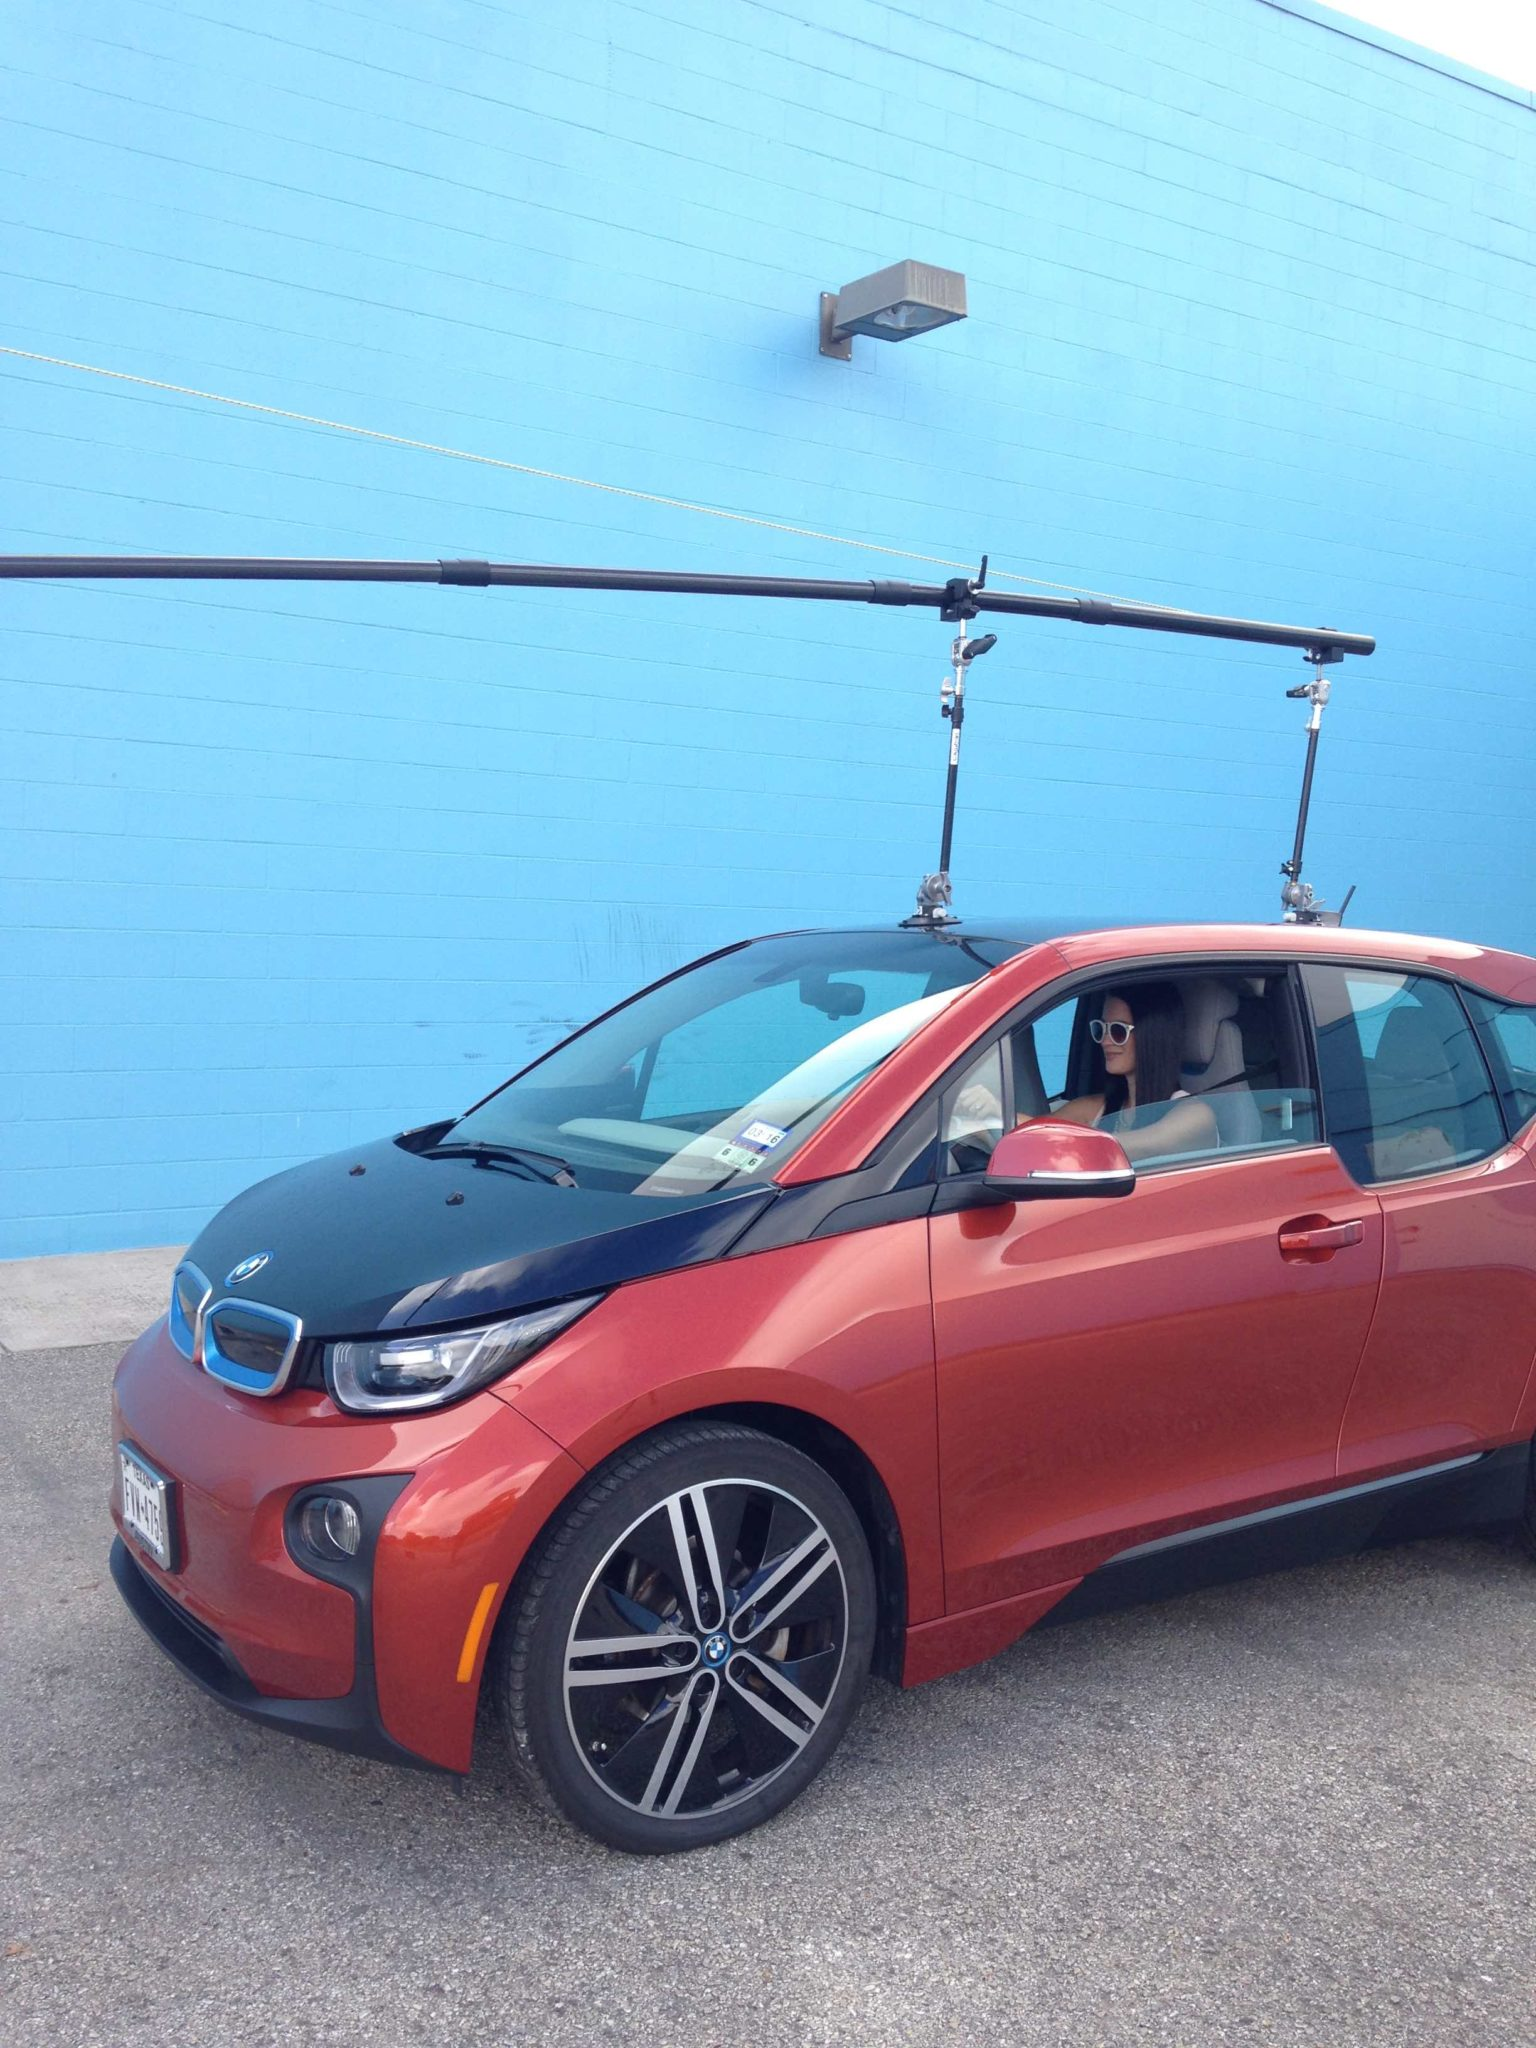 DTKAustin shares a recent photoshoot with Cody Hamilton and an electric BMW i3. Click for more photos and info.